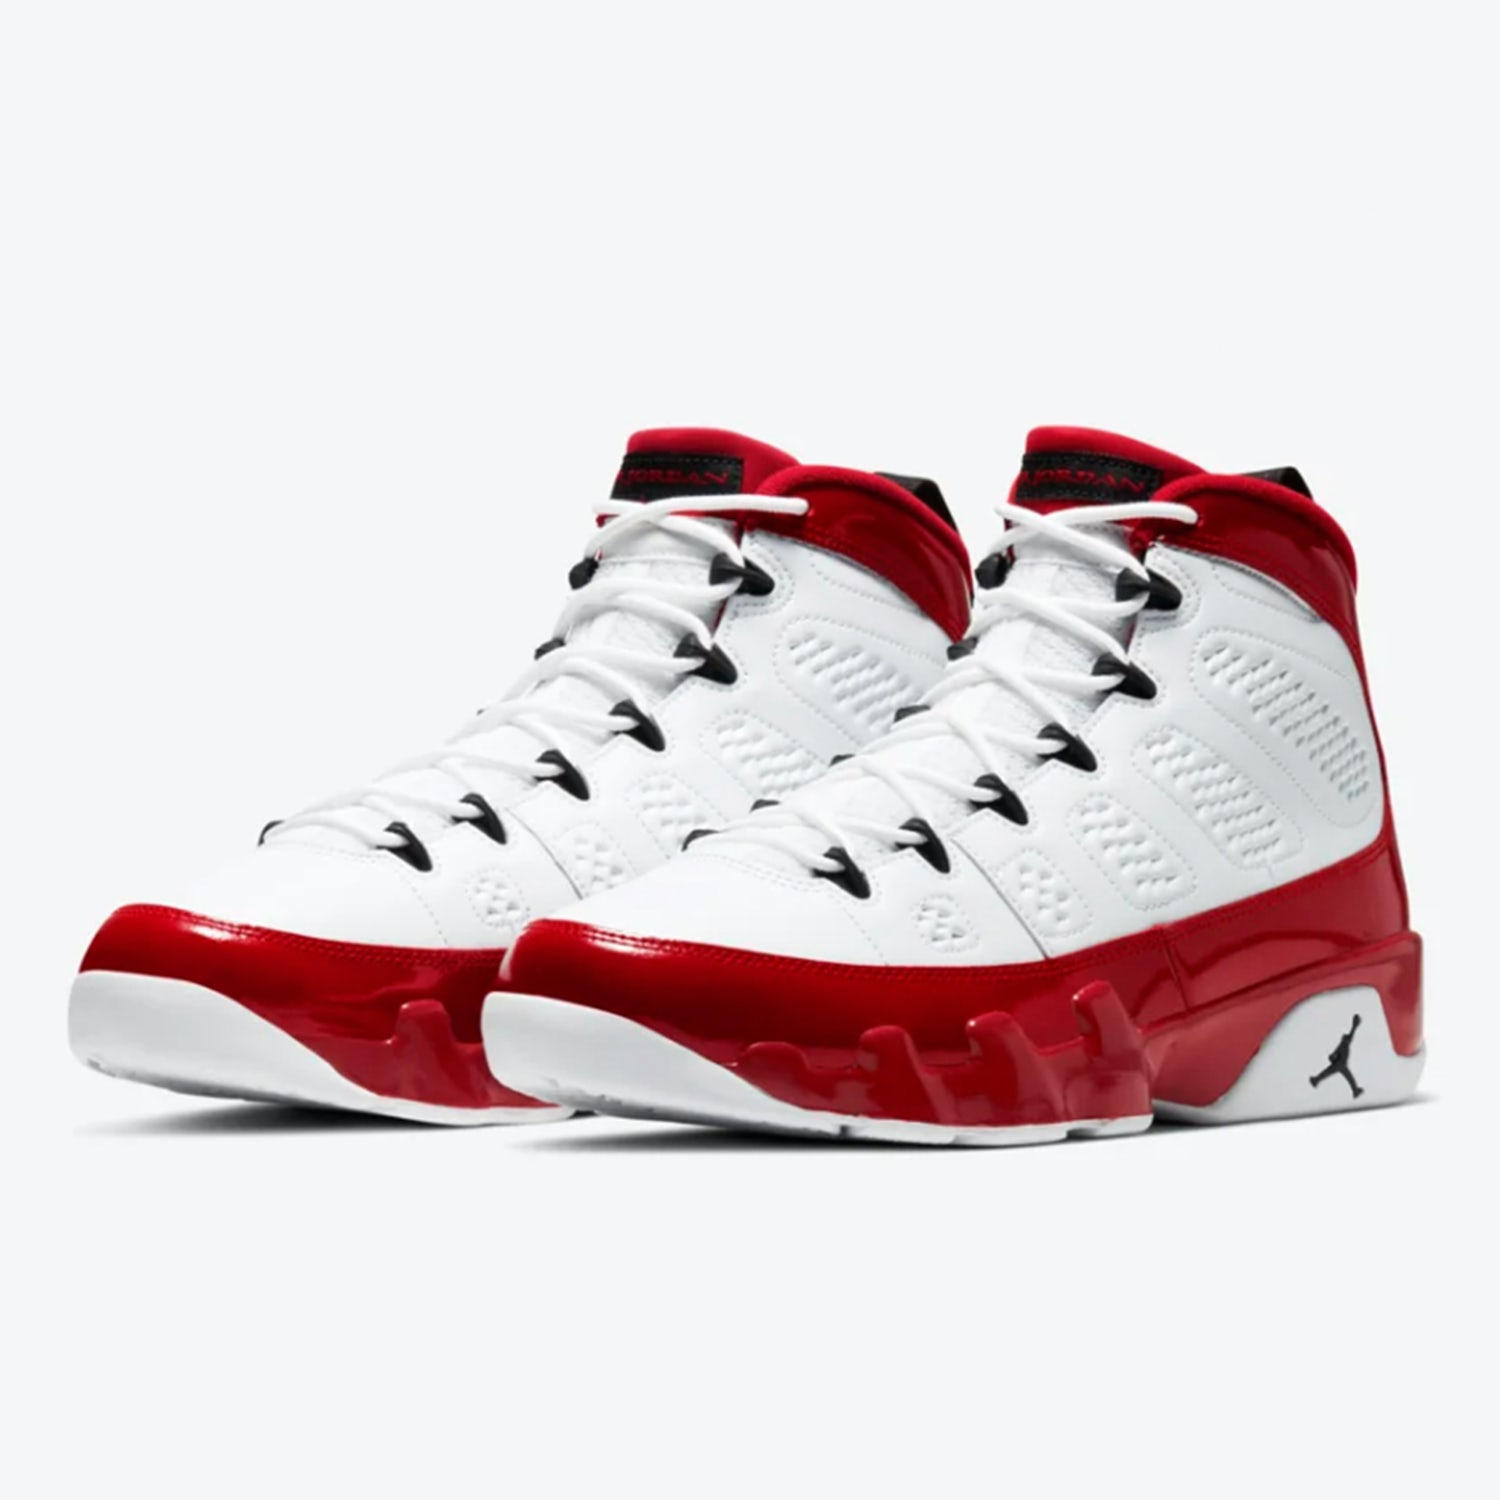 Air Jordan IX Gym Red 1